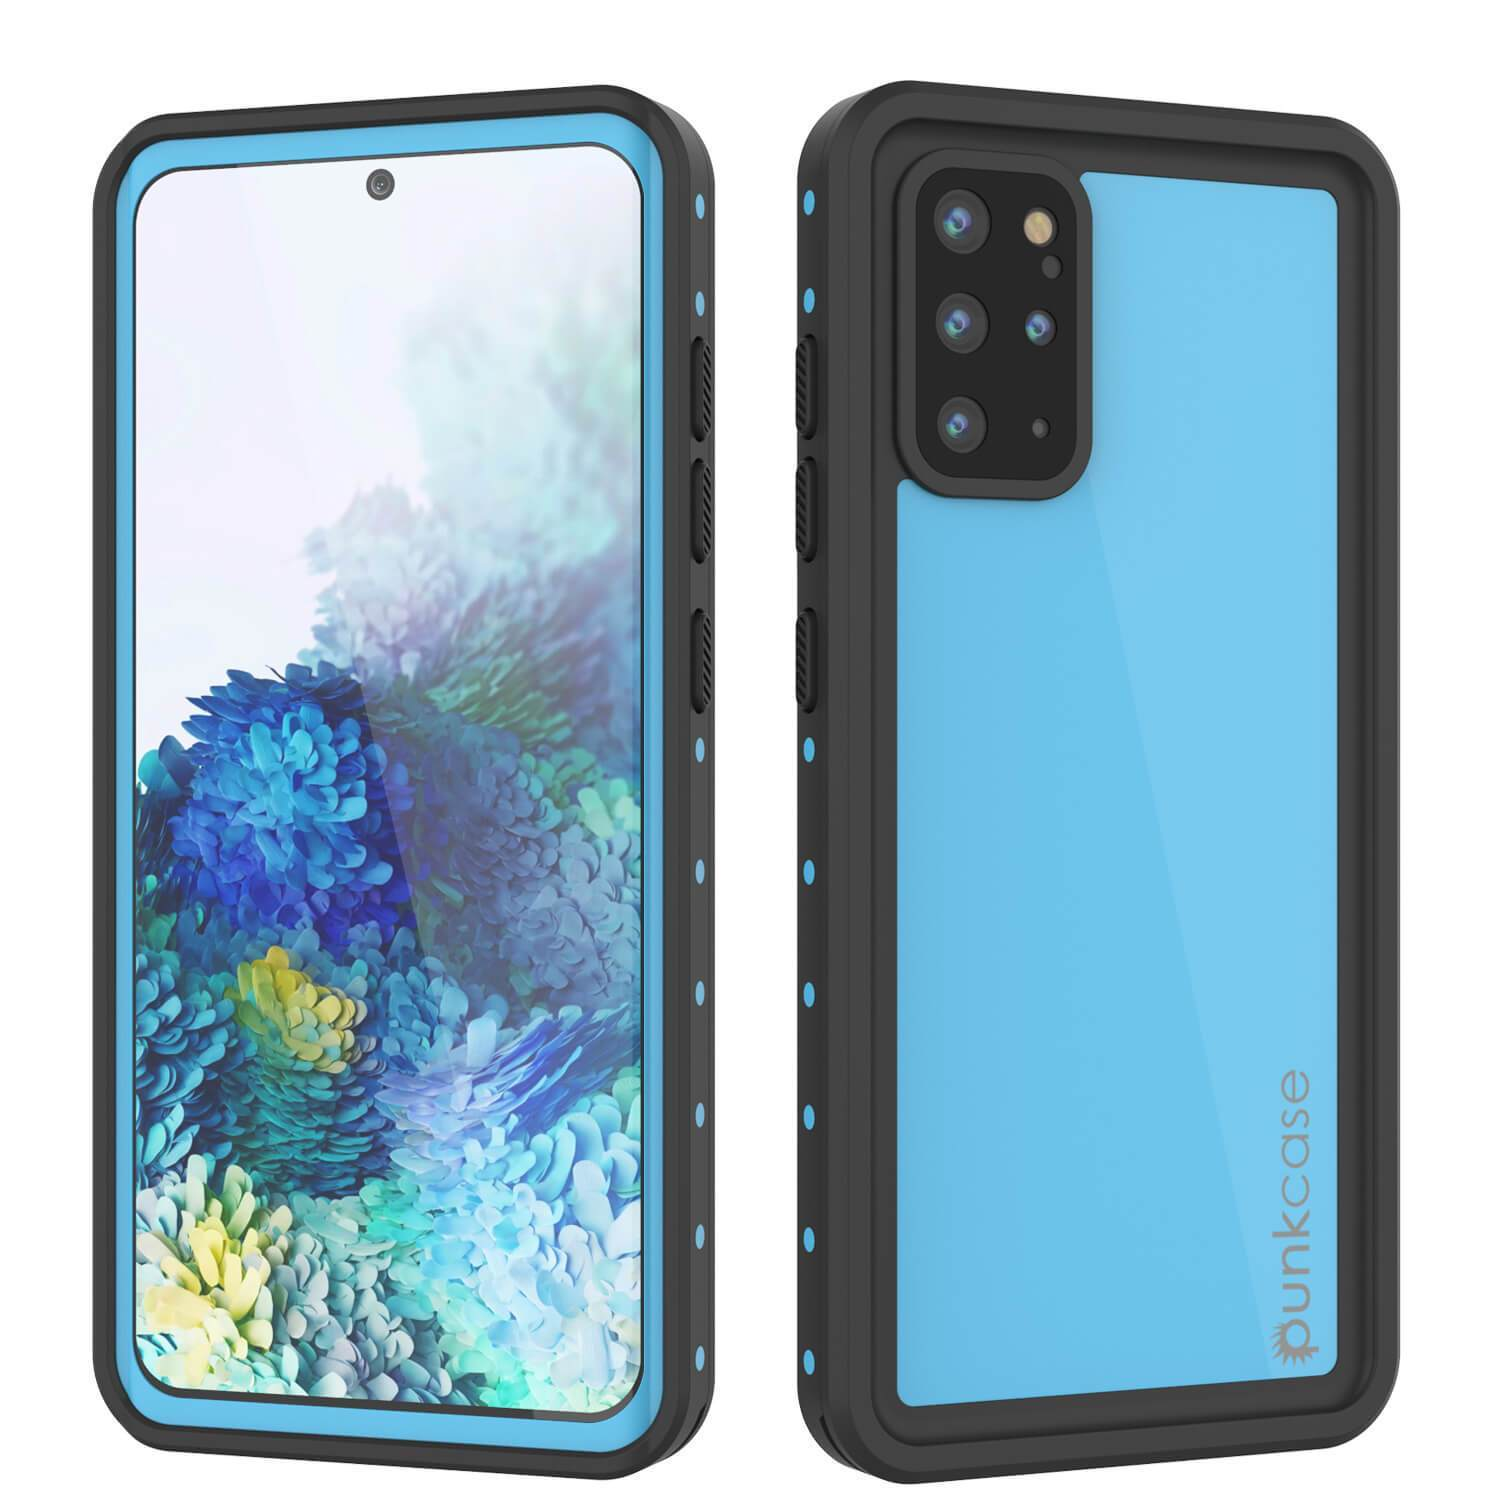 Galaxy S20+ Plus Waterproof Case PunkCase StudStar Light Blue Thin 6.6ft Underwater IP68 ShockProof